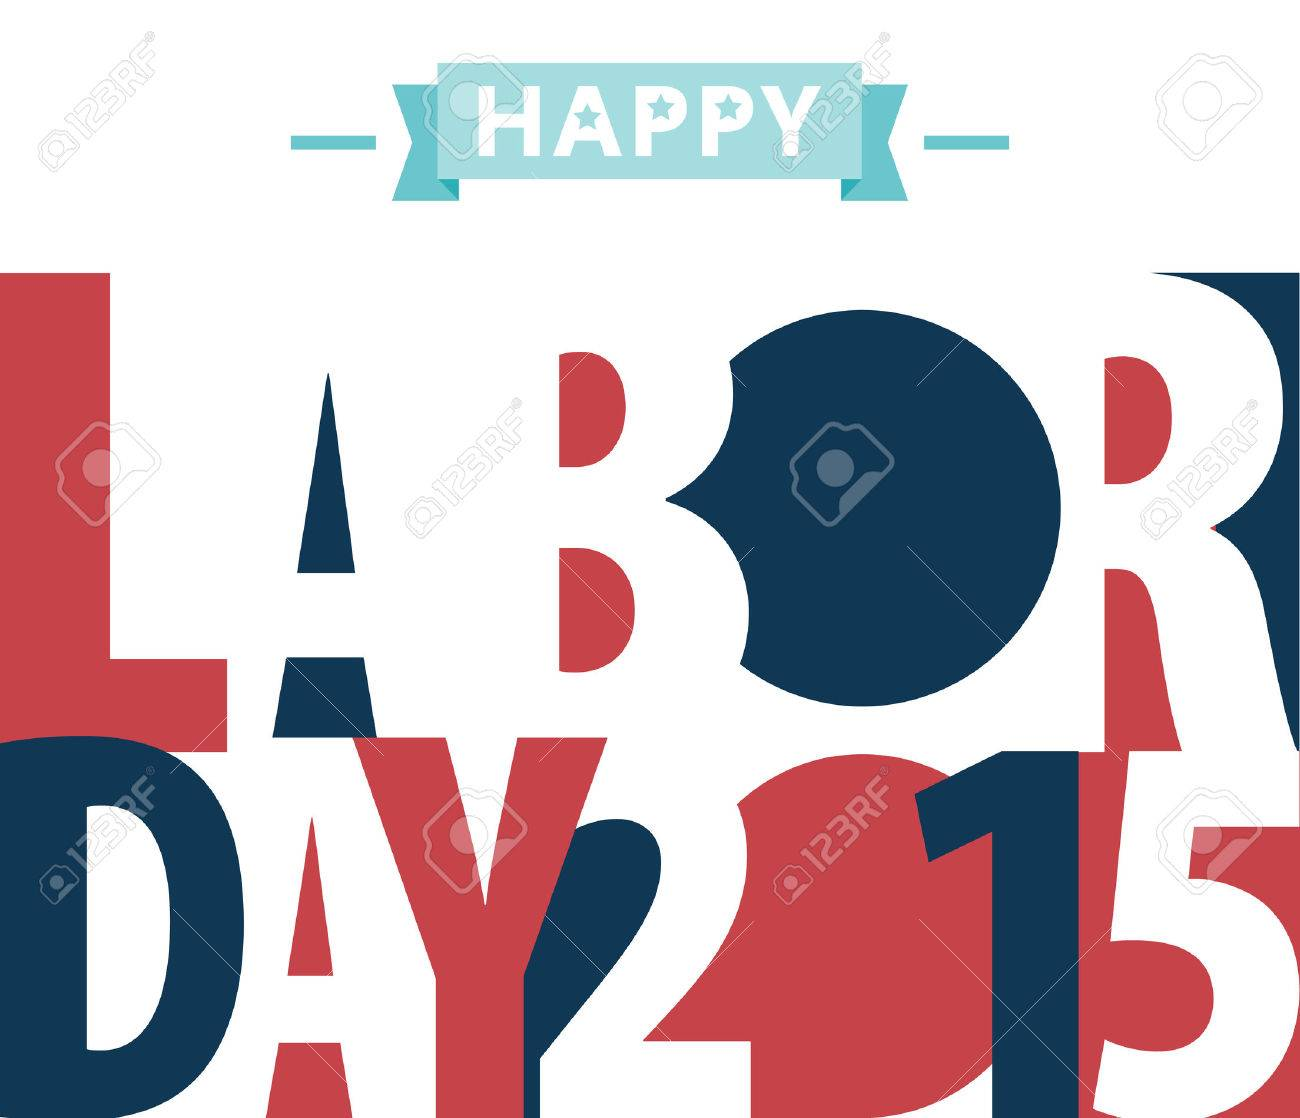 Happy Labor day american. text signs. vector illustration for design. All in a single layer. Vector illustration. - 40115806